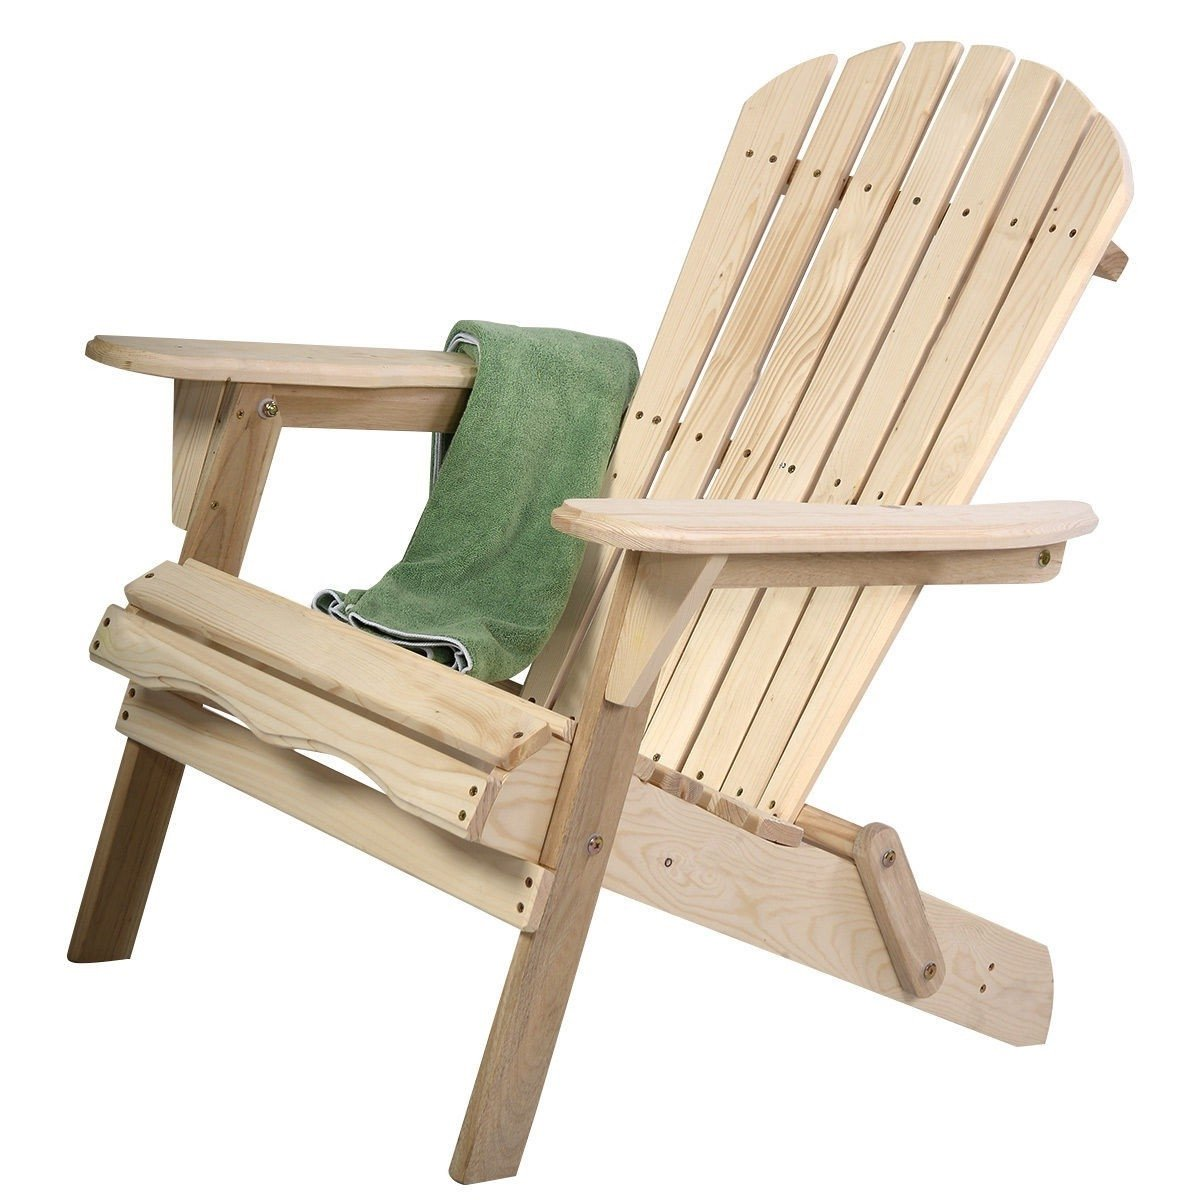 Brilliant Unfinished Wood Folding Adirondack Chair Outdoor Garden Patio Gamerscity Chair Design For Home Gamerscityorg